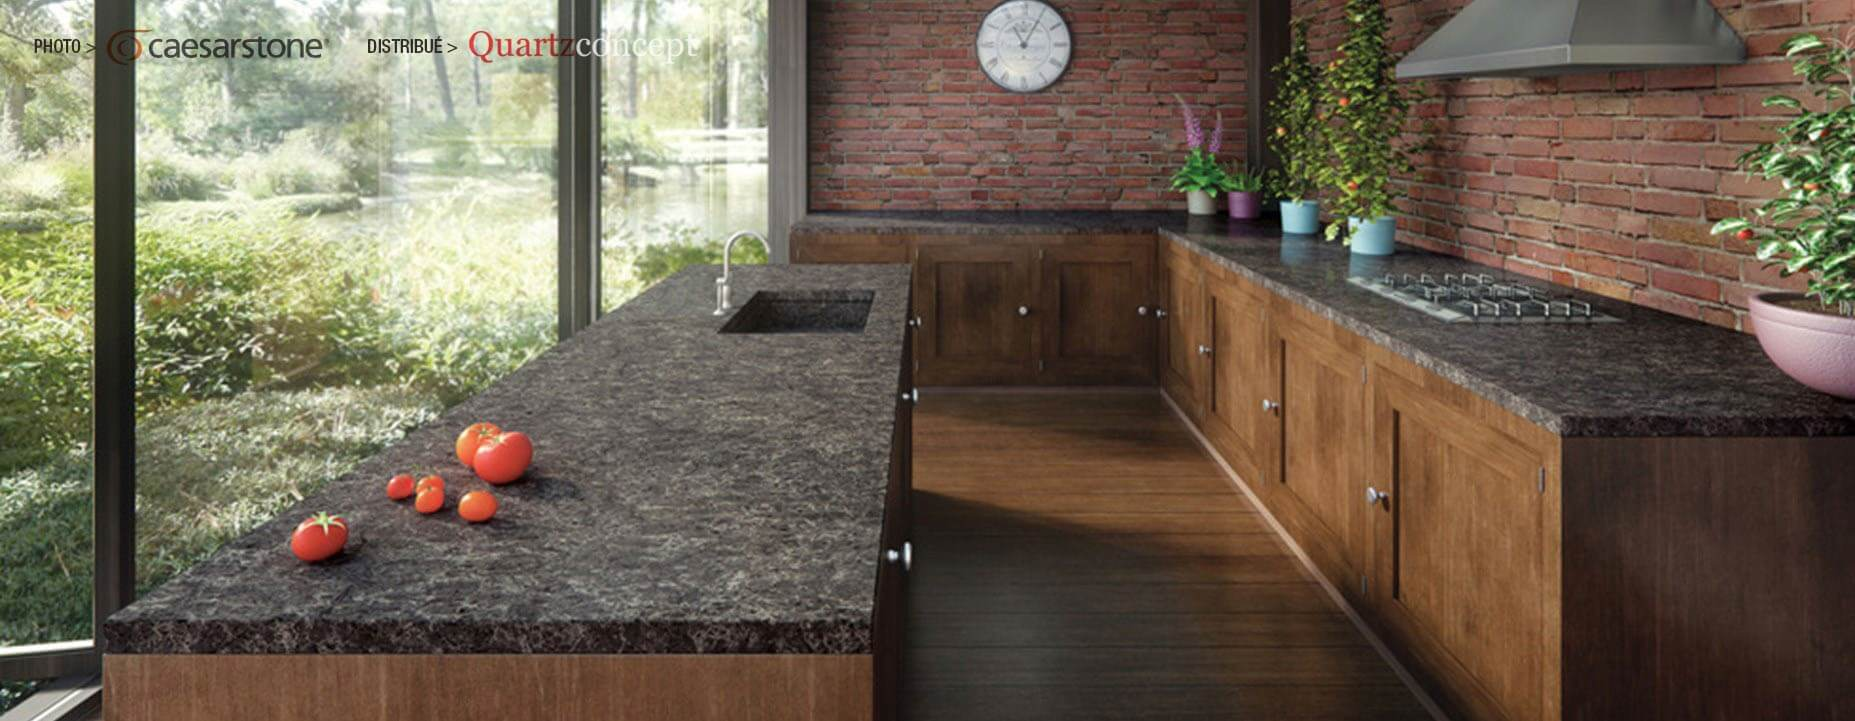 Quartz Caesarstone couleur 6003 coastal grey